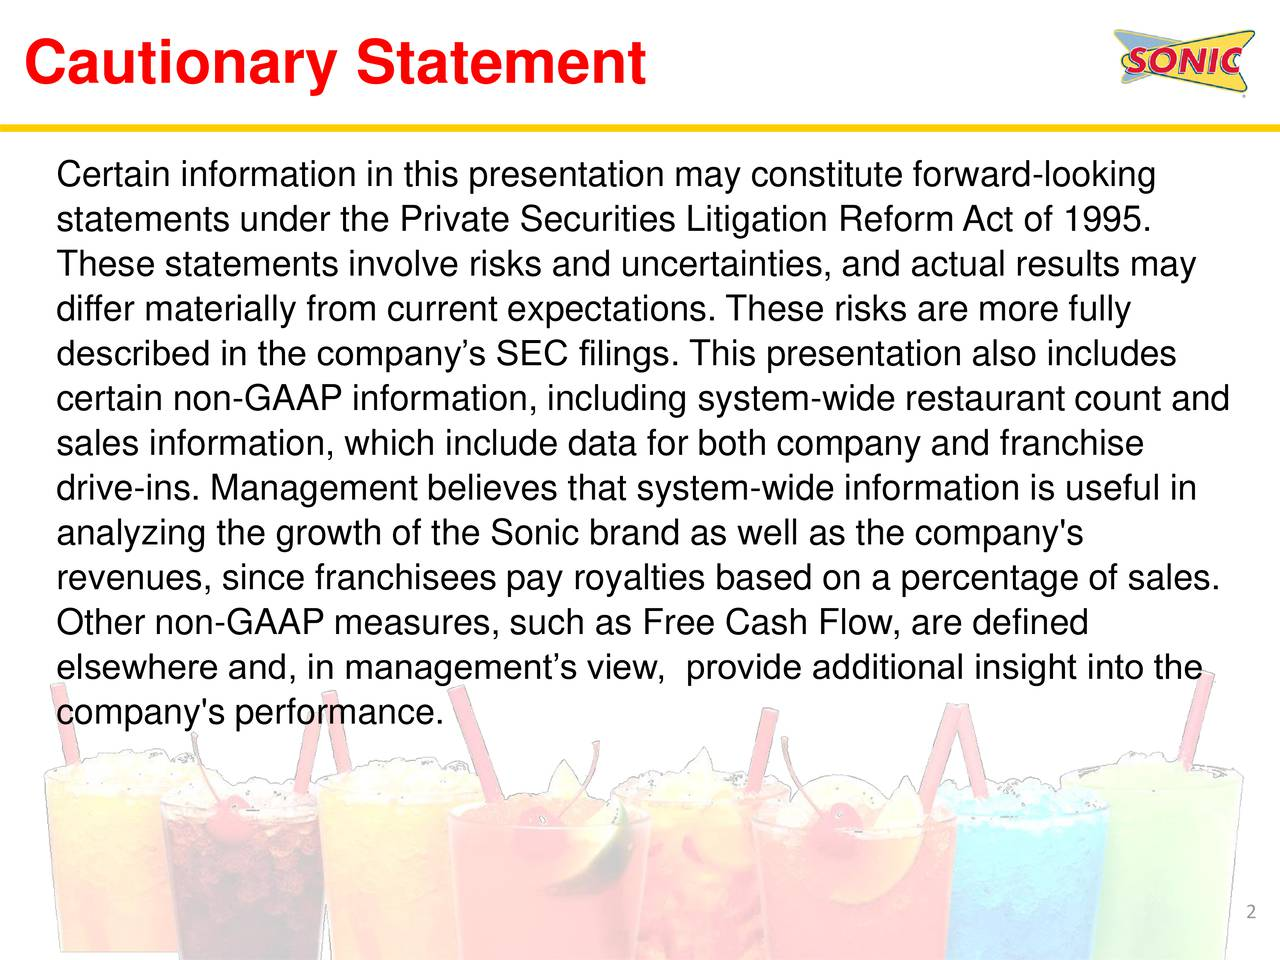 Certain information in this presentation may constitute forward-looking statements under the Private Securities Litigation Reform Act of 1995. These statements involve risks and uncertainties, and actual results may differ materially from current expectations. These risks are more fully described in the companys SEC filings. This presentation also includes certain non-GAAP information, including system-wide restaurant count and sales information, which include data for both company and franchise drive-ins. Management believes that system-wide information is useful in analyzing the growth of the Sonic brand as well as the company's revenues, since franchisees pay royalties based on a percentage of sales. Other non-GAAP measures, such as Free Cash Flow, are defined elsewhere and, in managements view, provide additional insight into the company's performance. 2